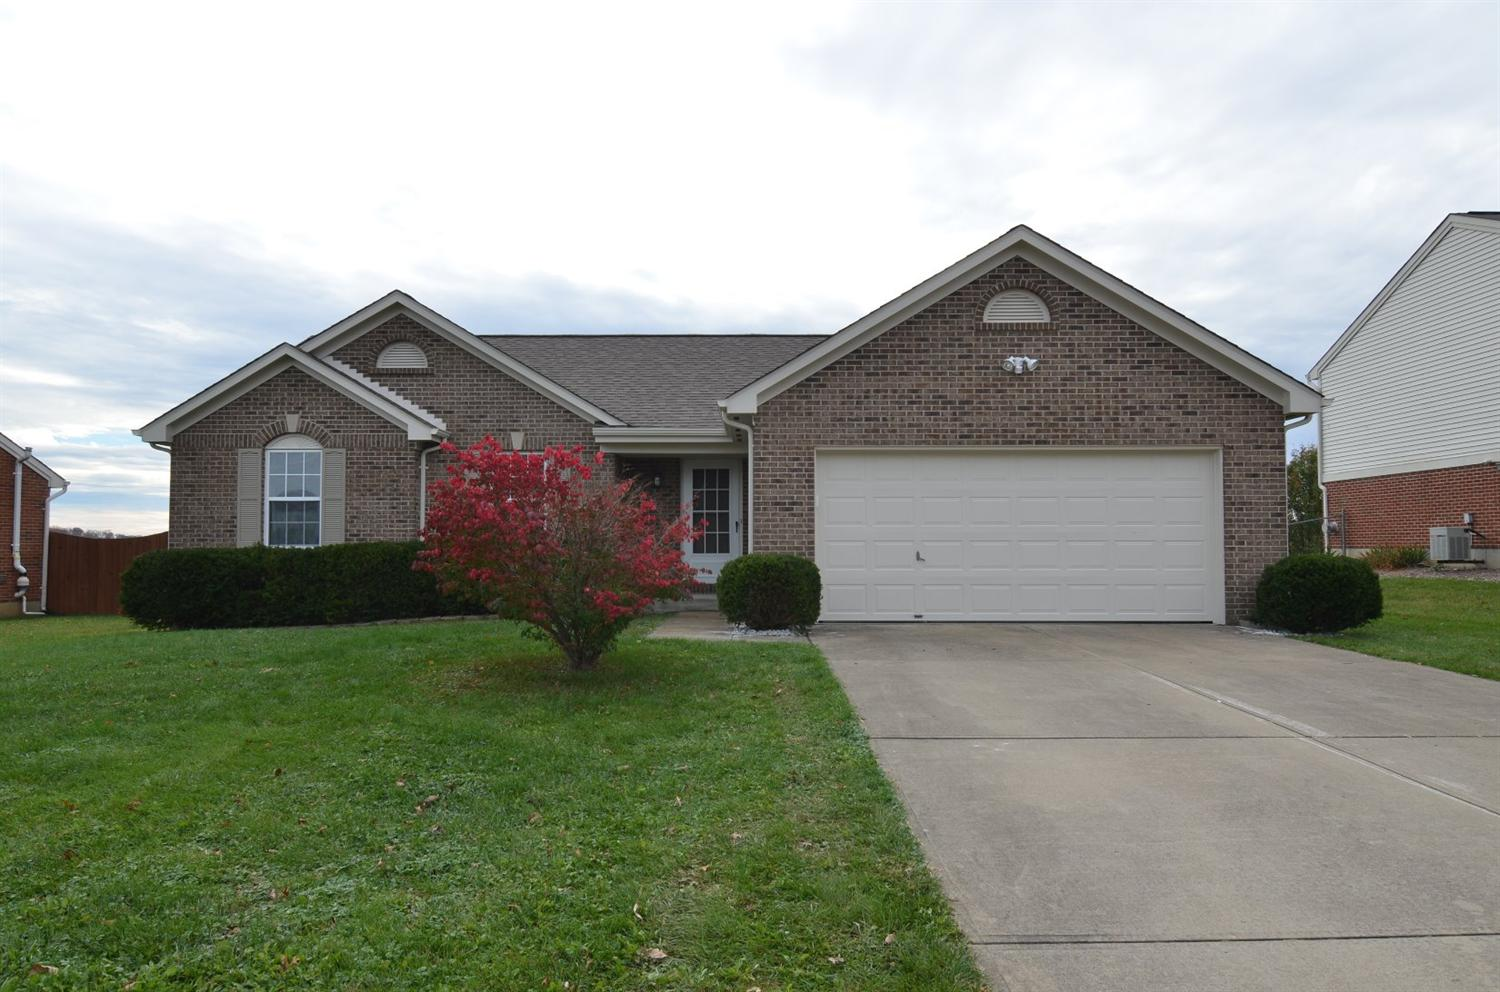 Photo 1 for 2117 Hartland Blvd Independence, KY 41051